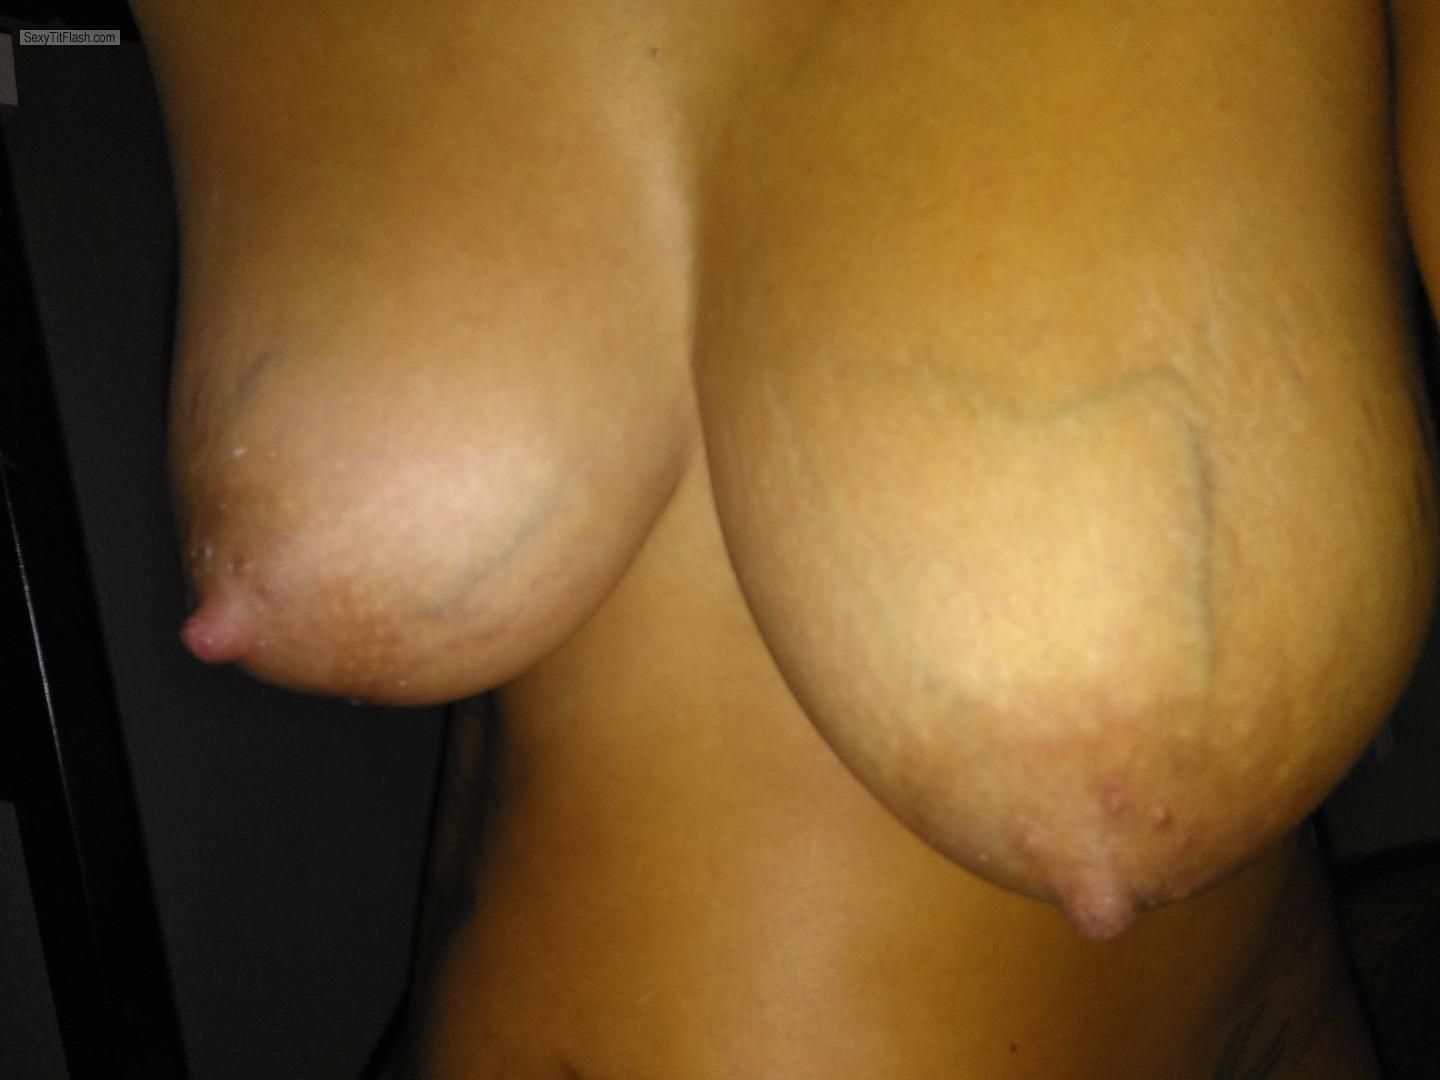 Tit Flash: My Very Small Tits - Topless Hot Girl from United Kingdom